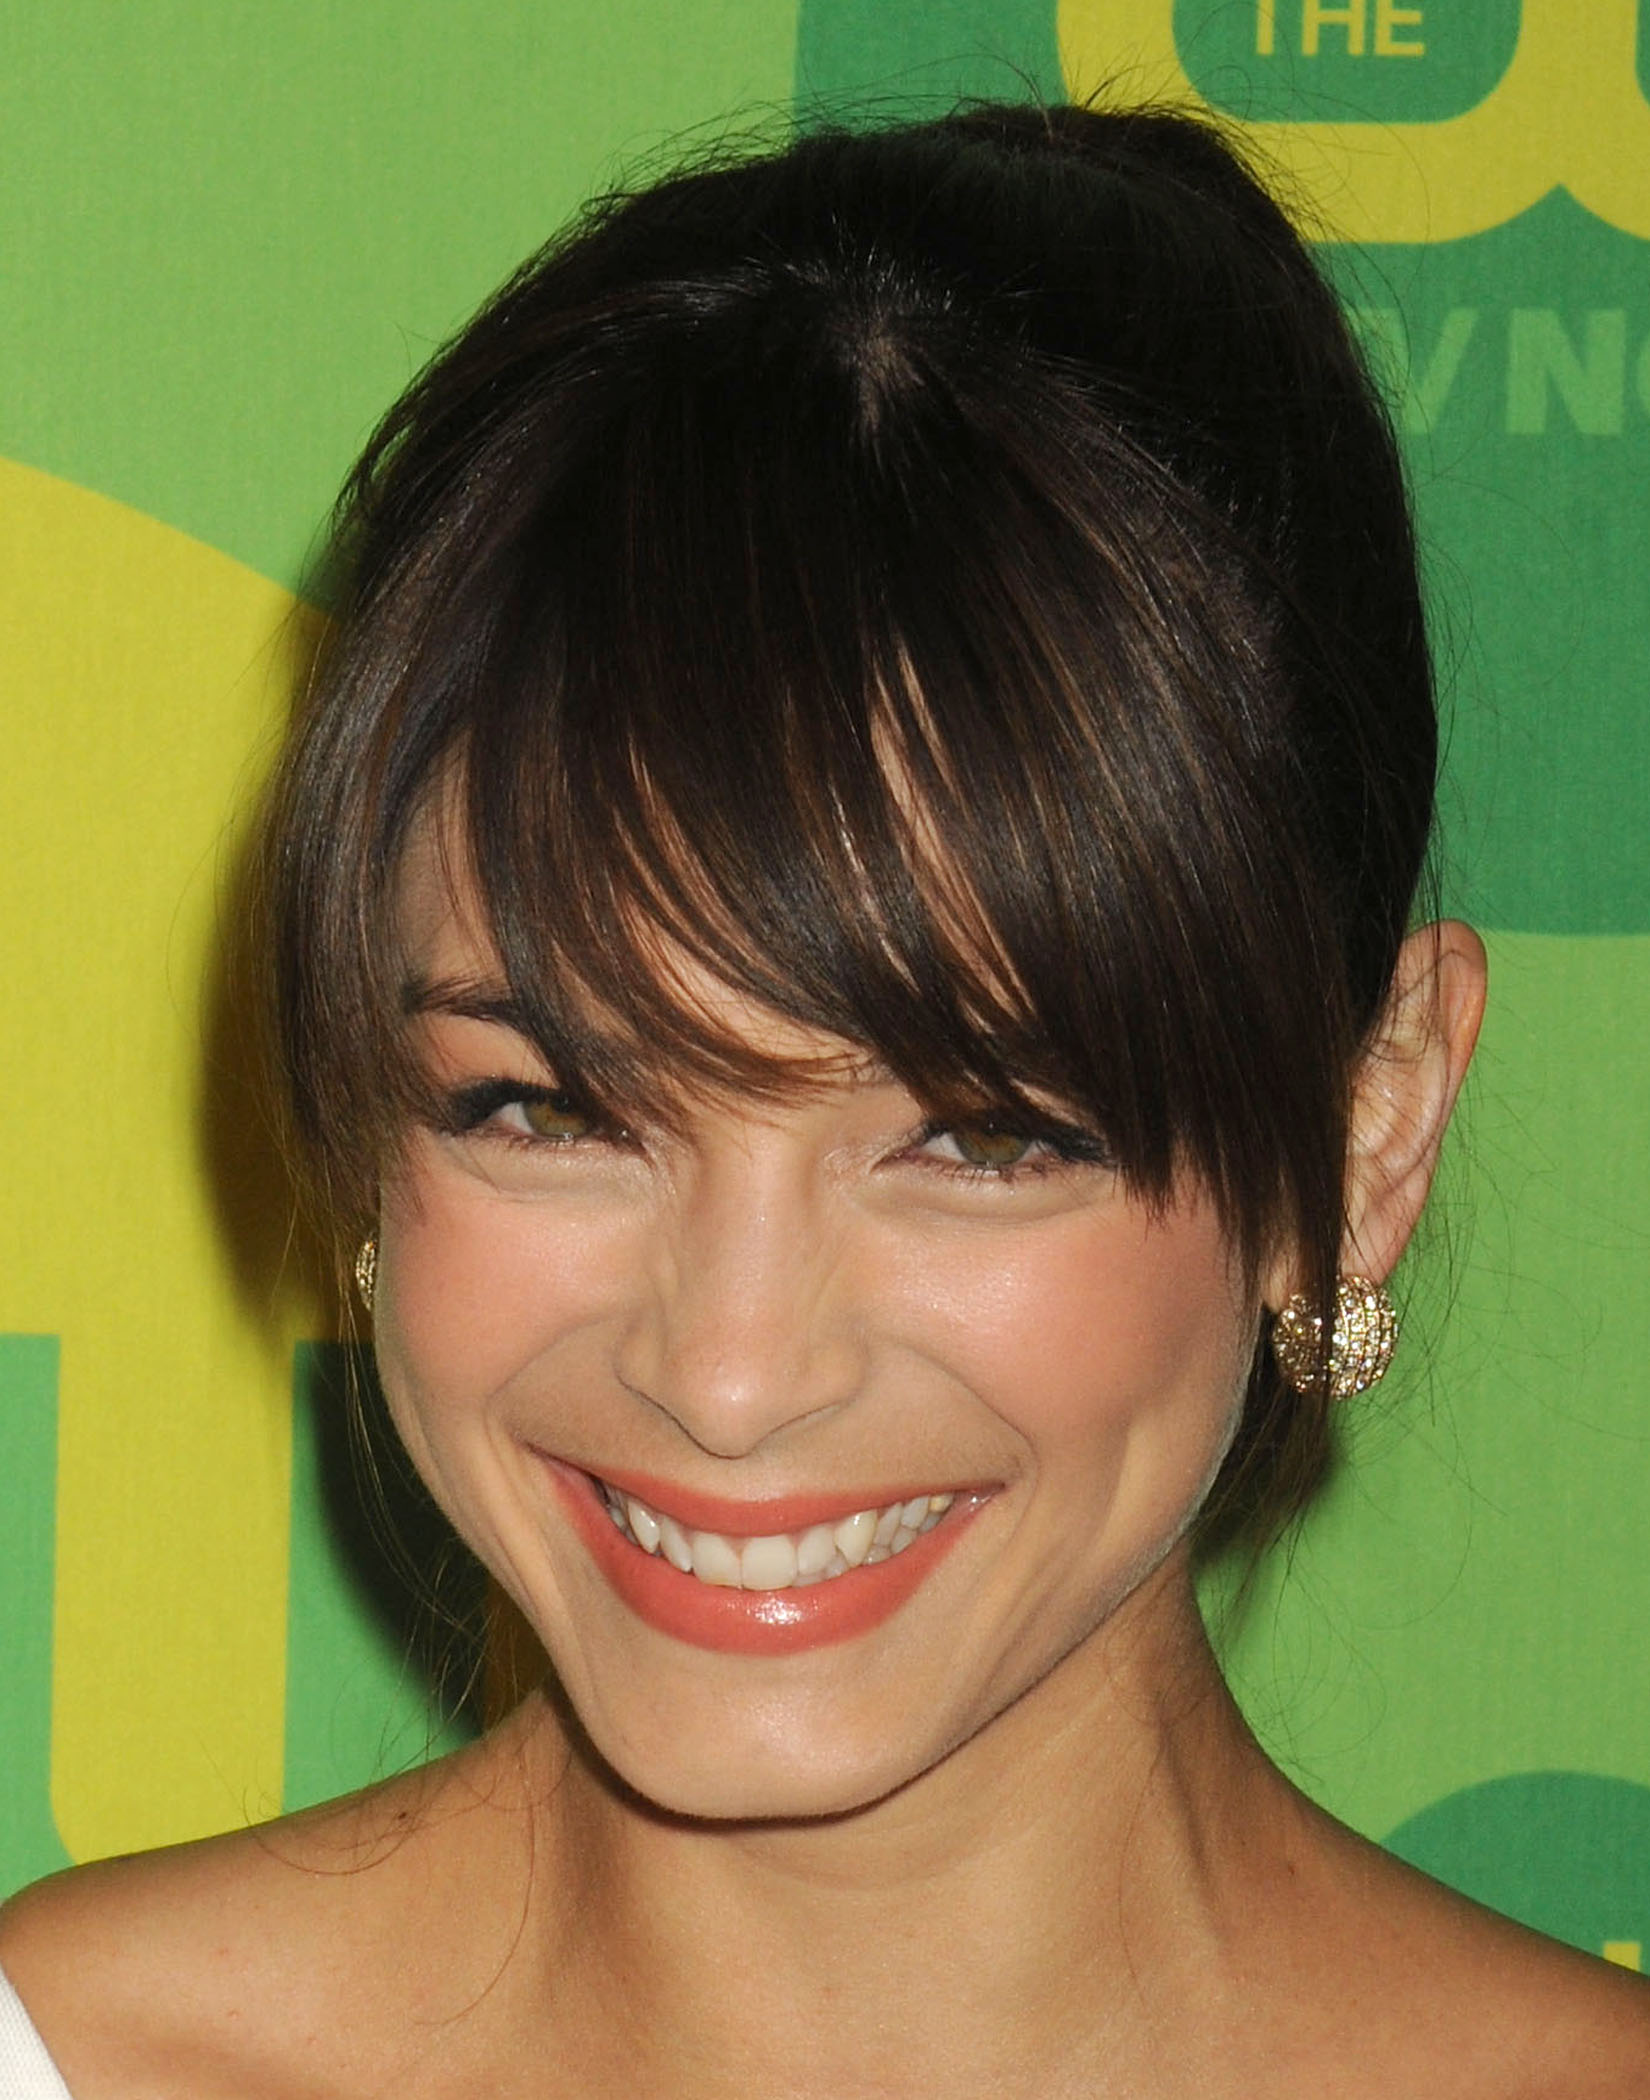 31 Nude Pictures Of Kristin Kreuk Which Make Certain To Prevail Upon Your Heart - Best Hottie